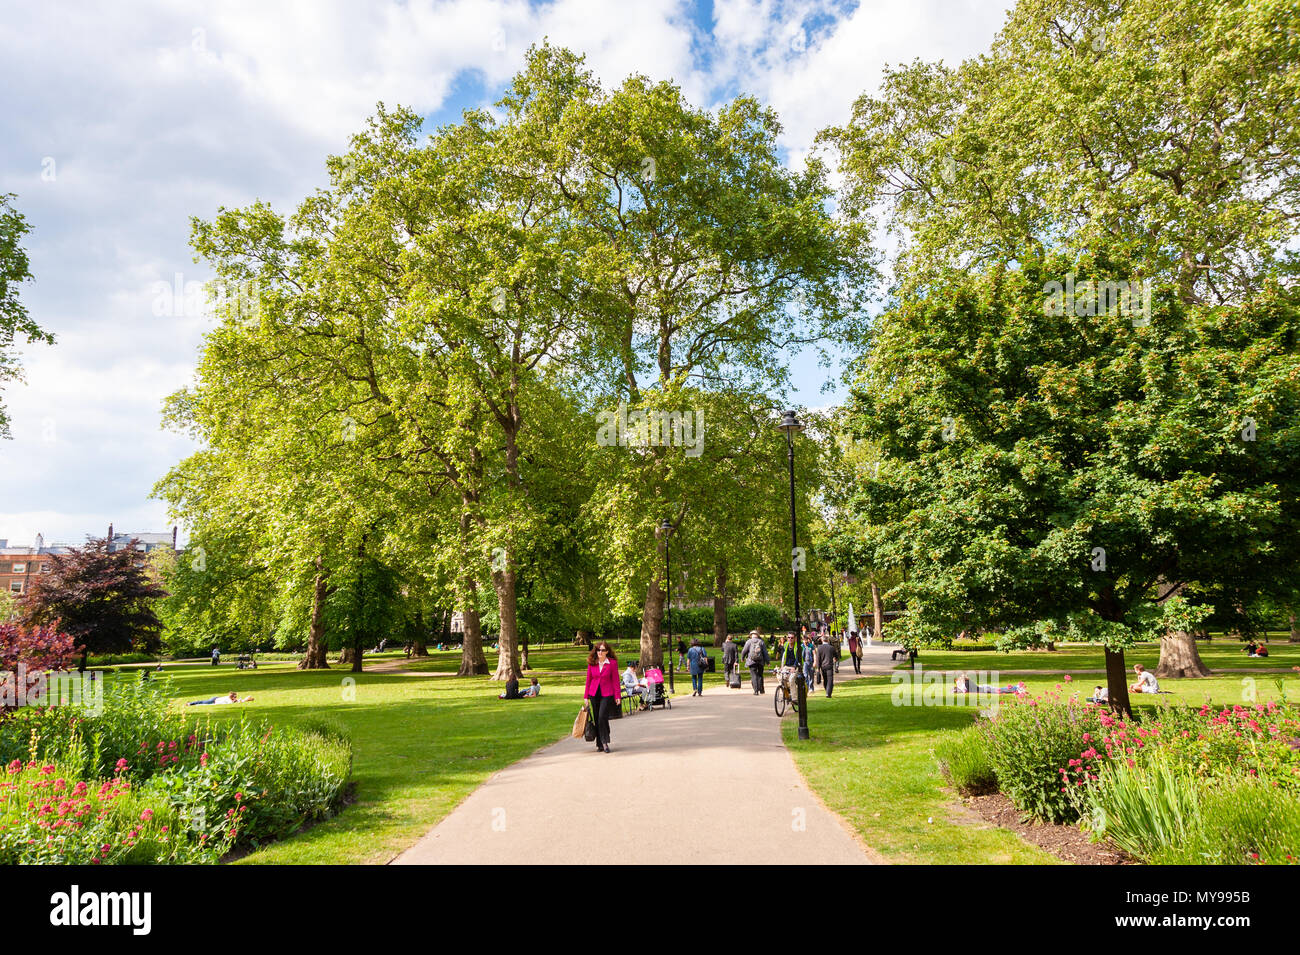 Russell Square in Bloomsbury, London, UK - Stock Image